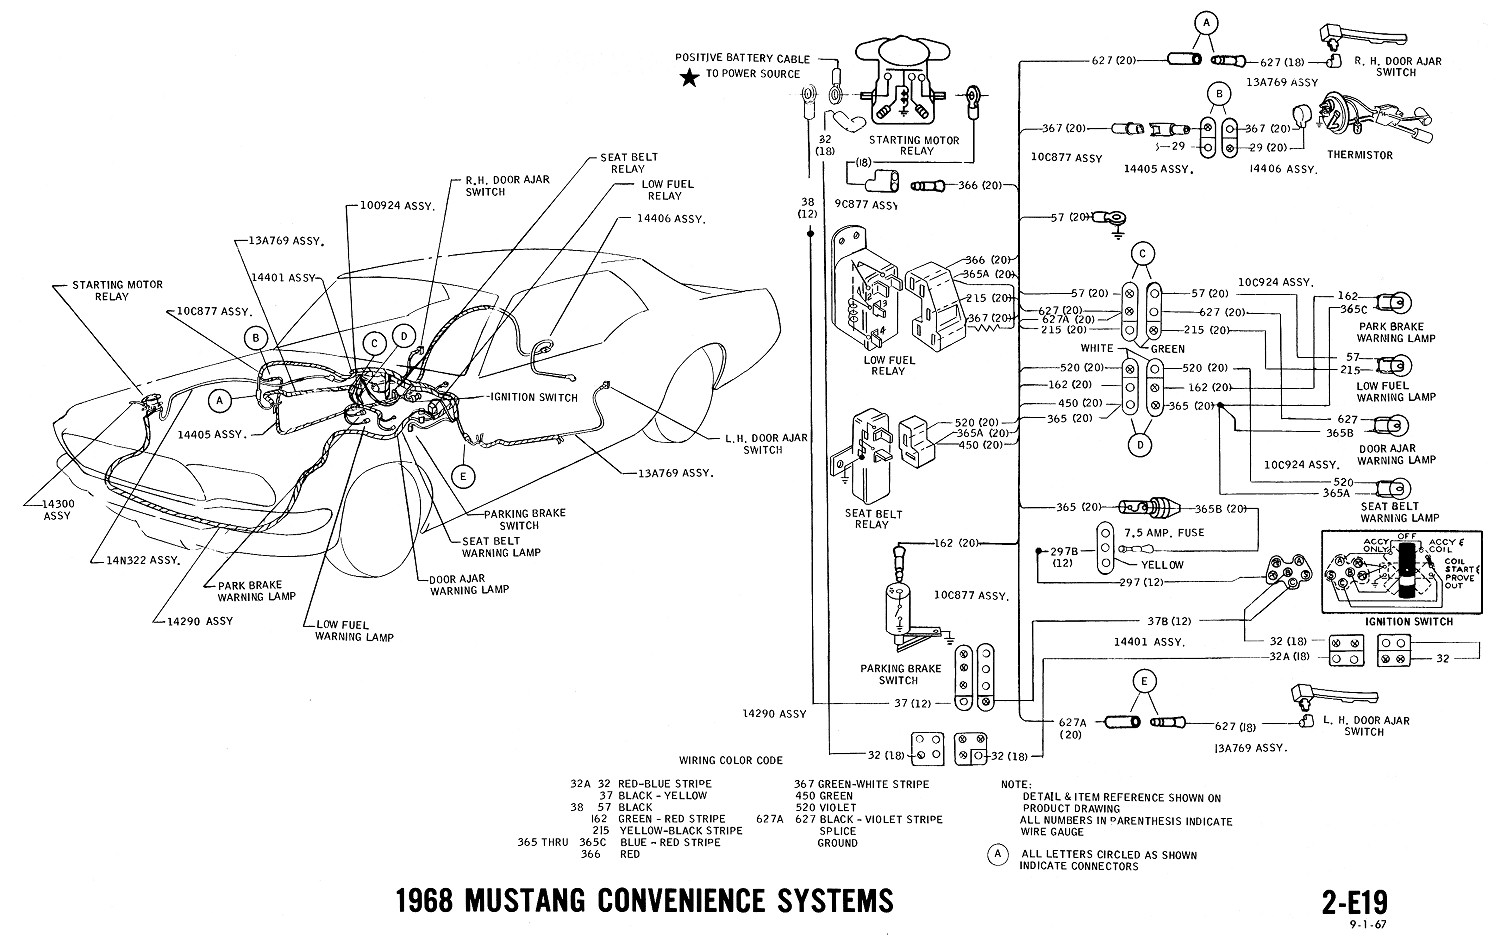 E19 1968 mustang wiring diagrams evolving software 1966 mustang under dash wiring harness at reclaimingppi.co